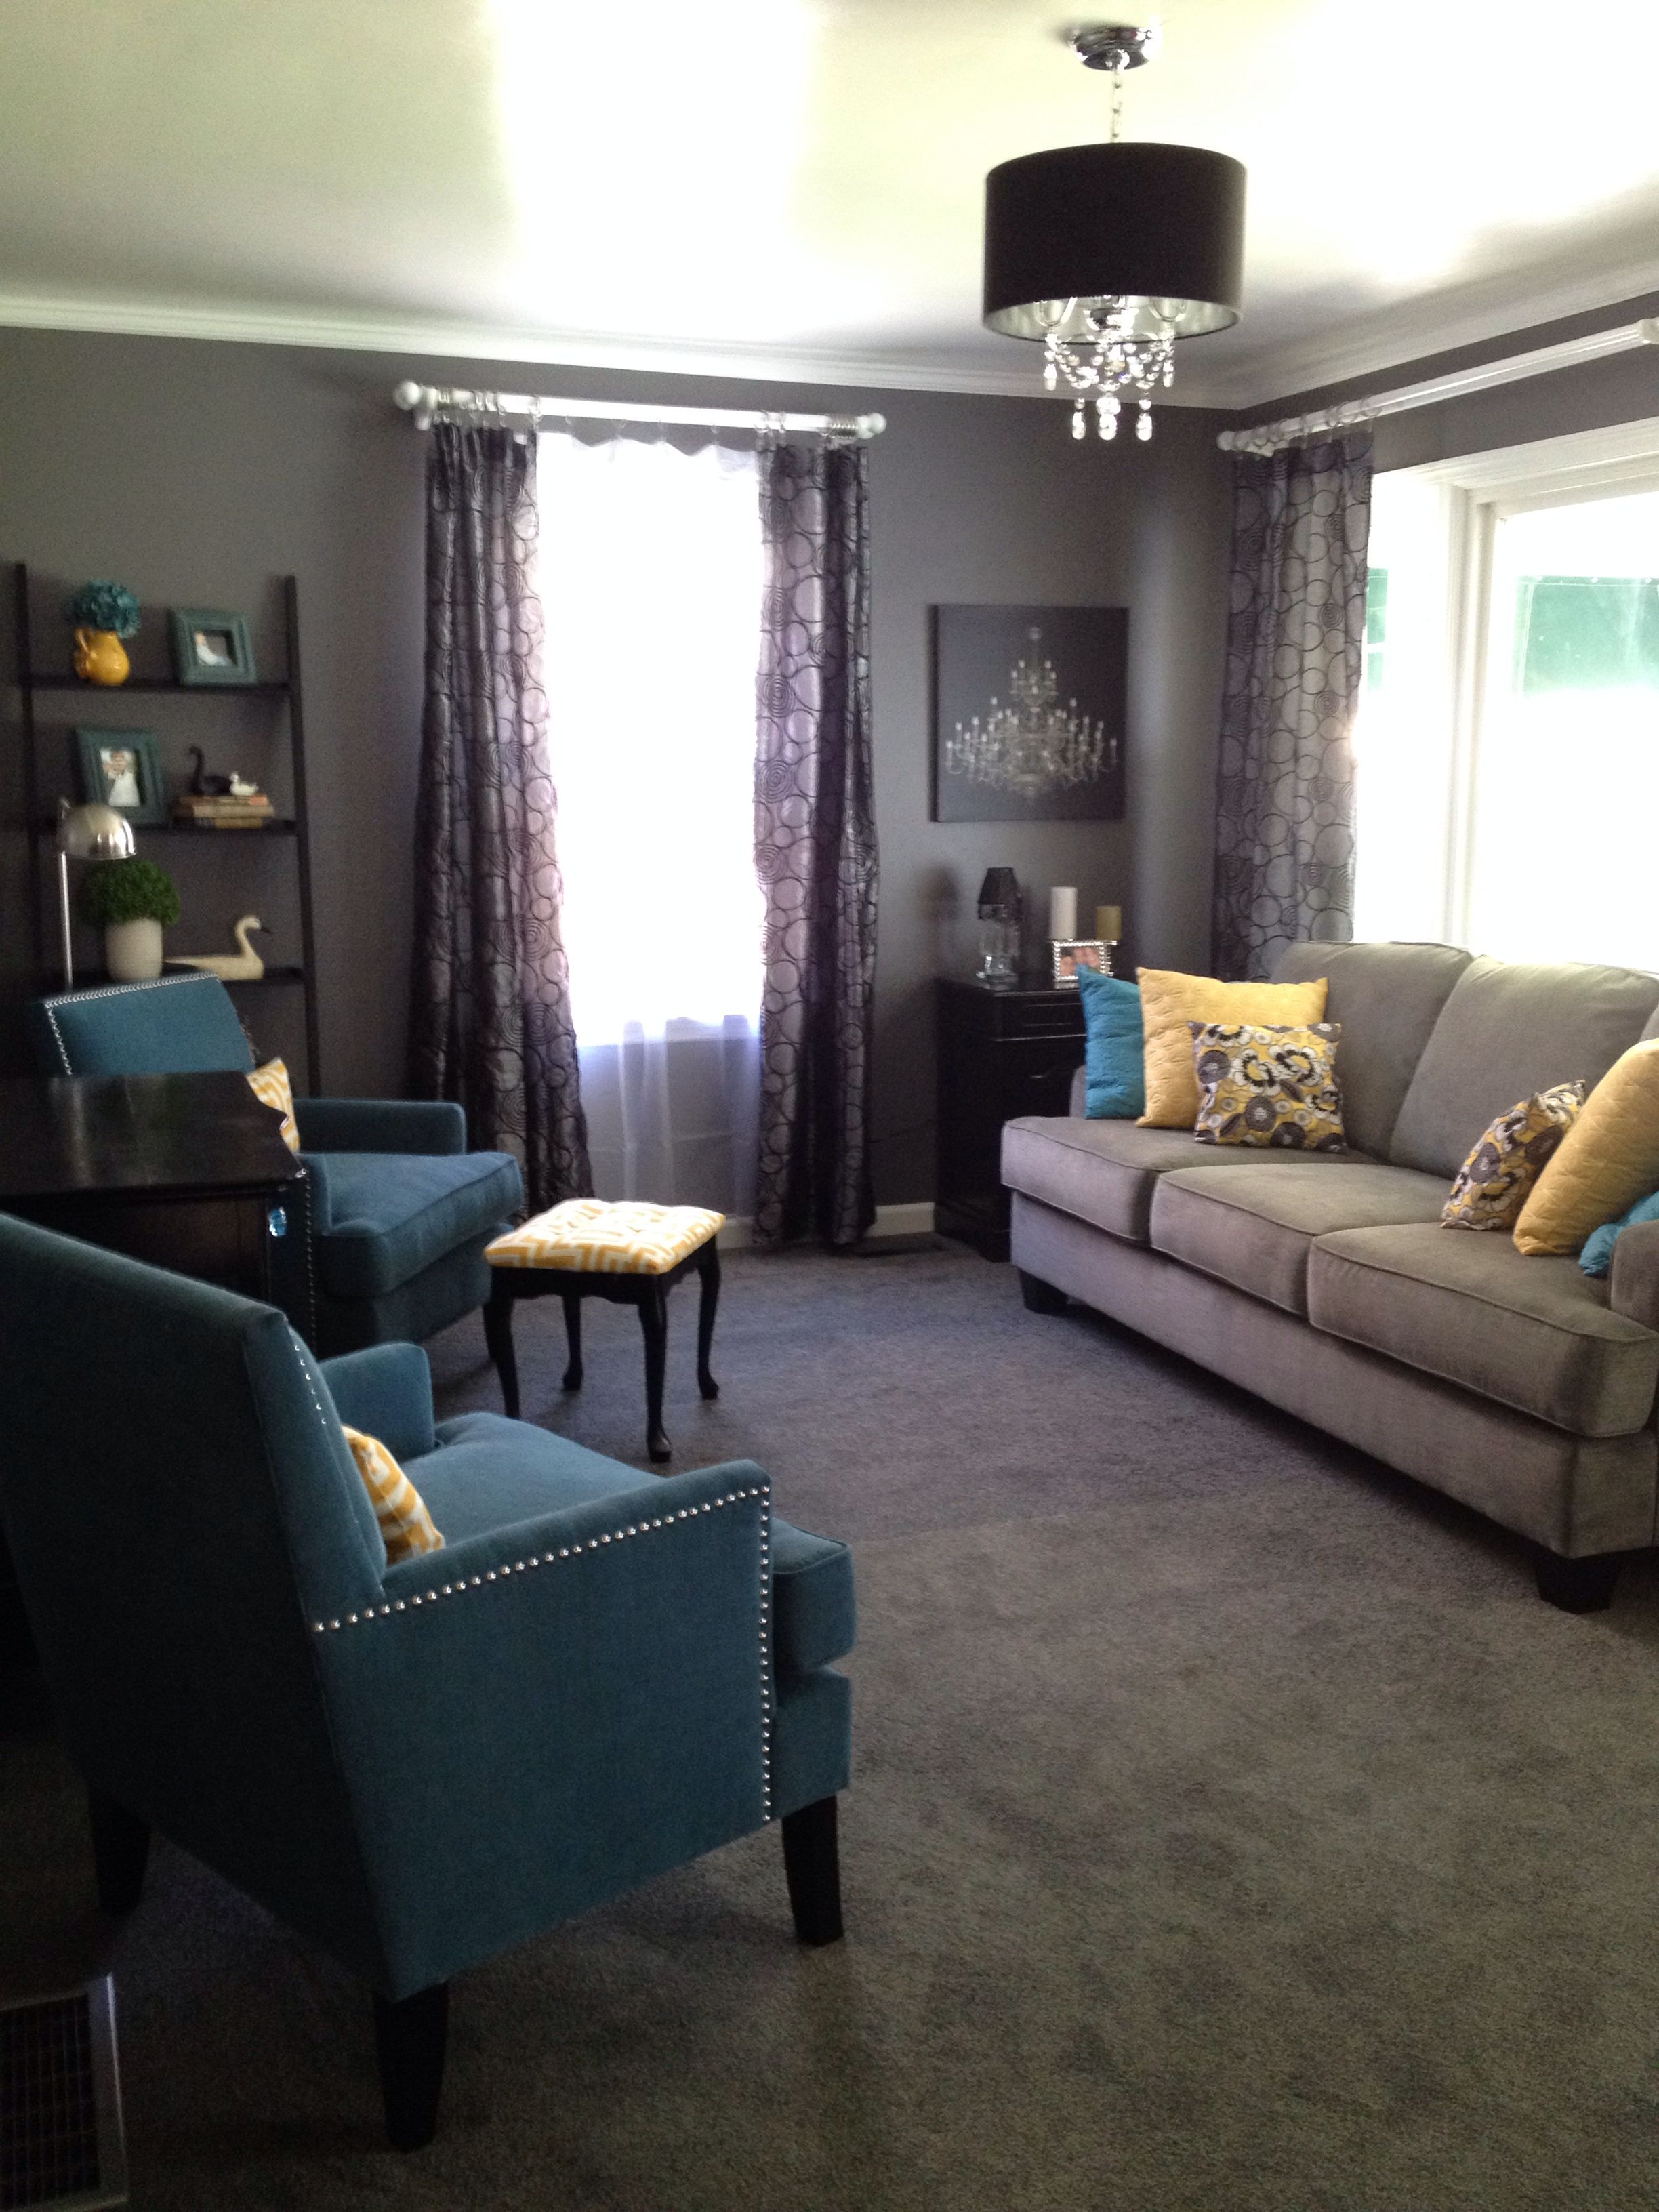 Gray teal and yellow living room designs i love for Gray and teal living room